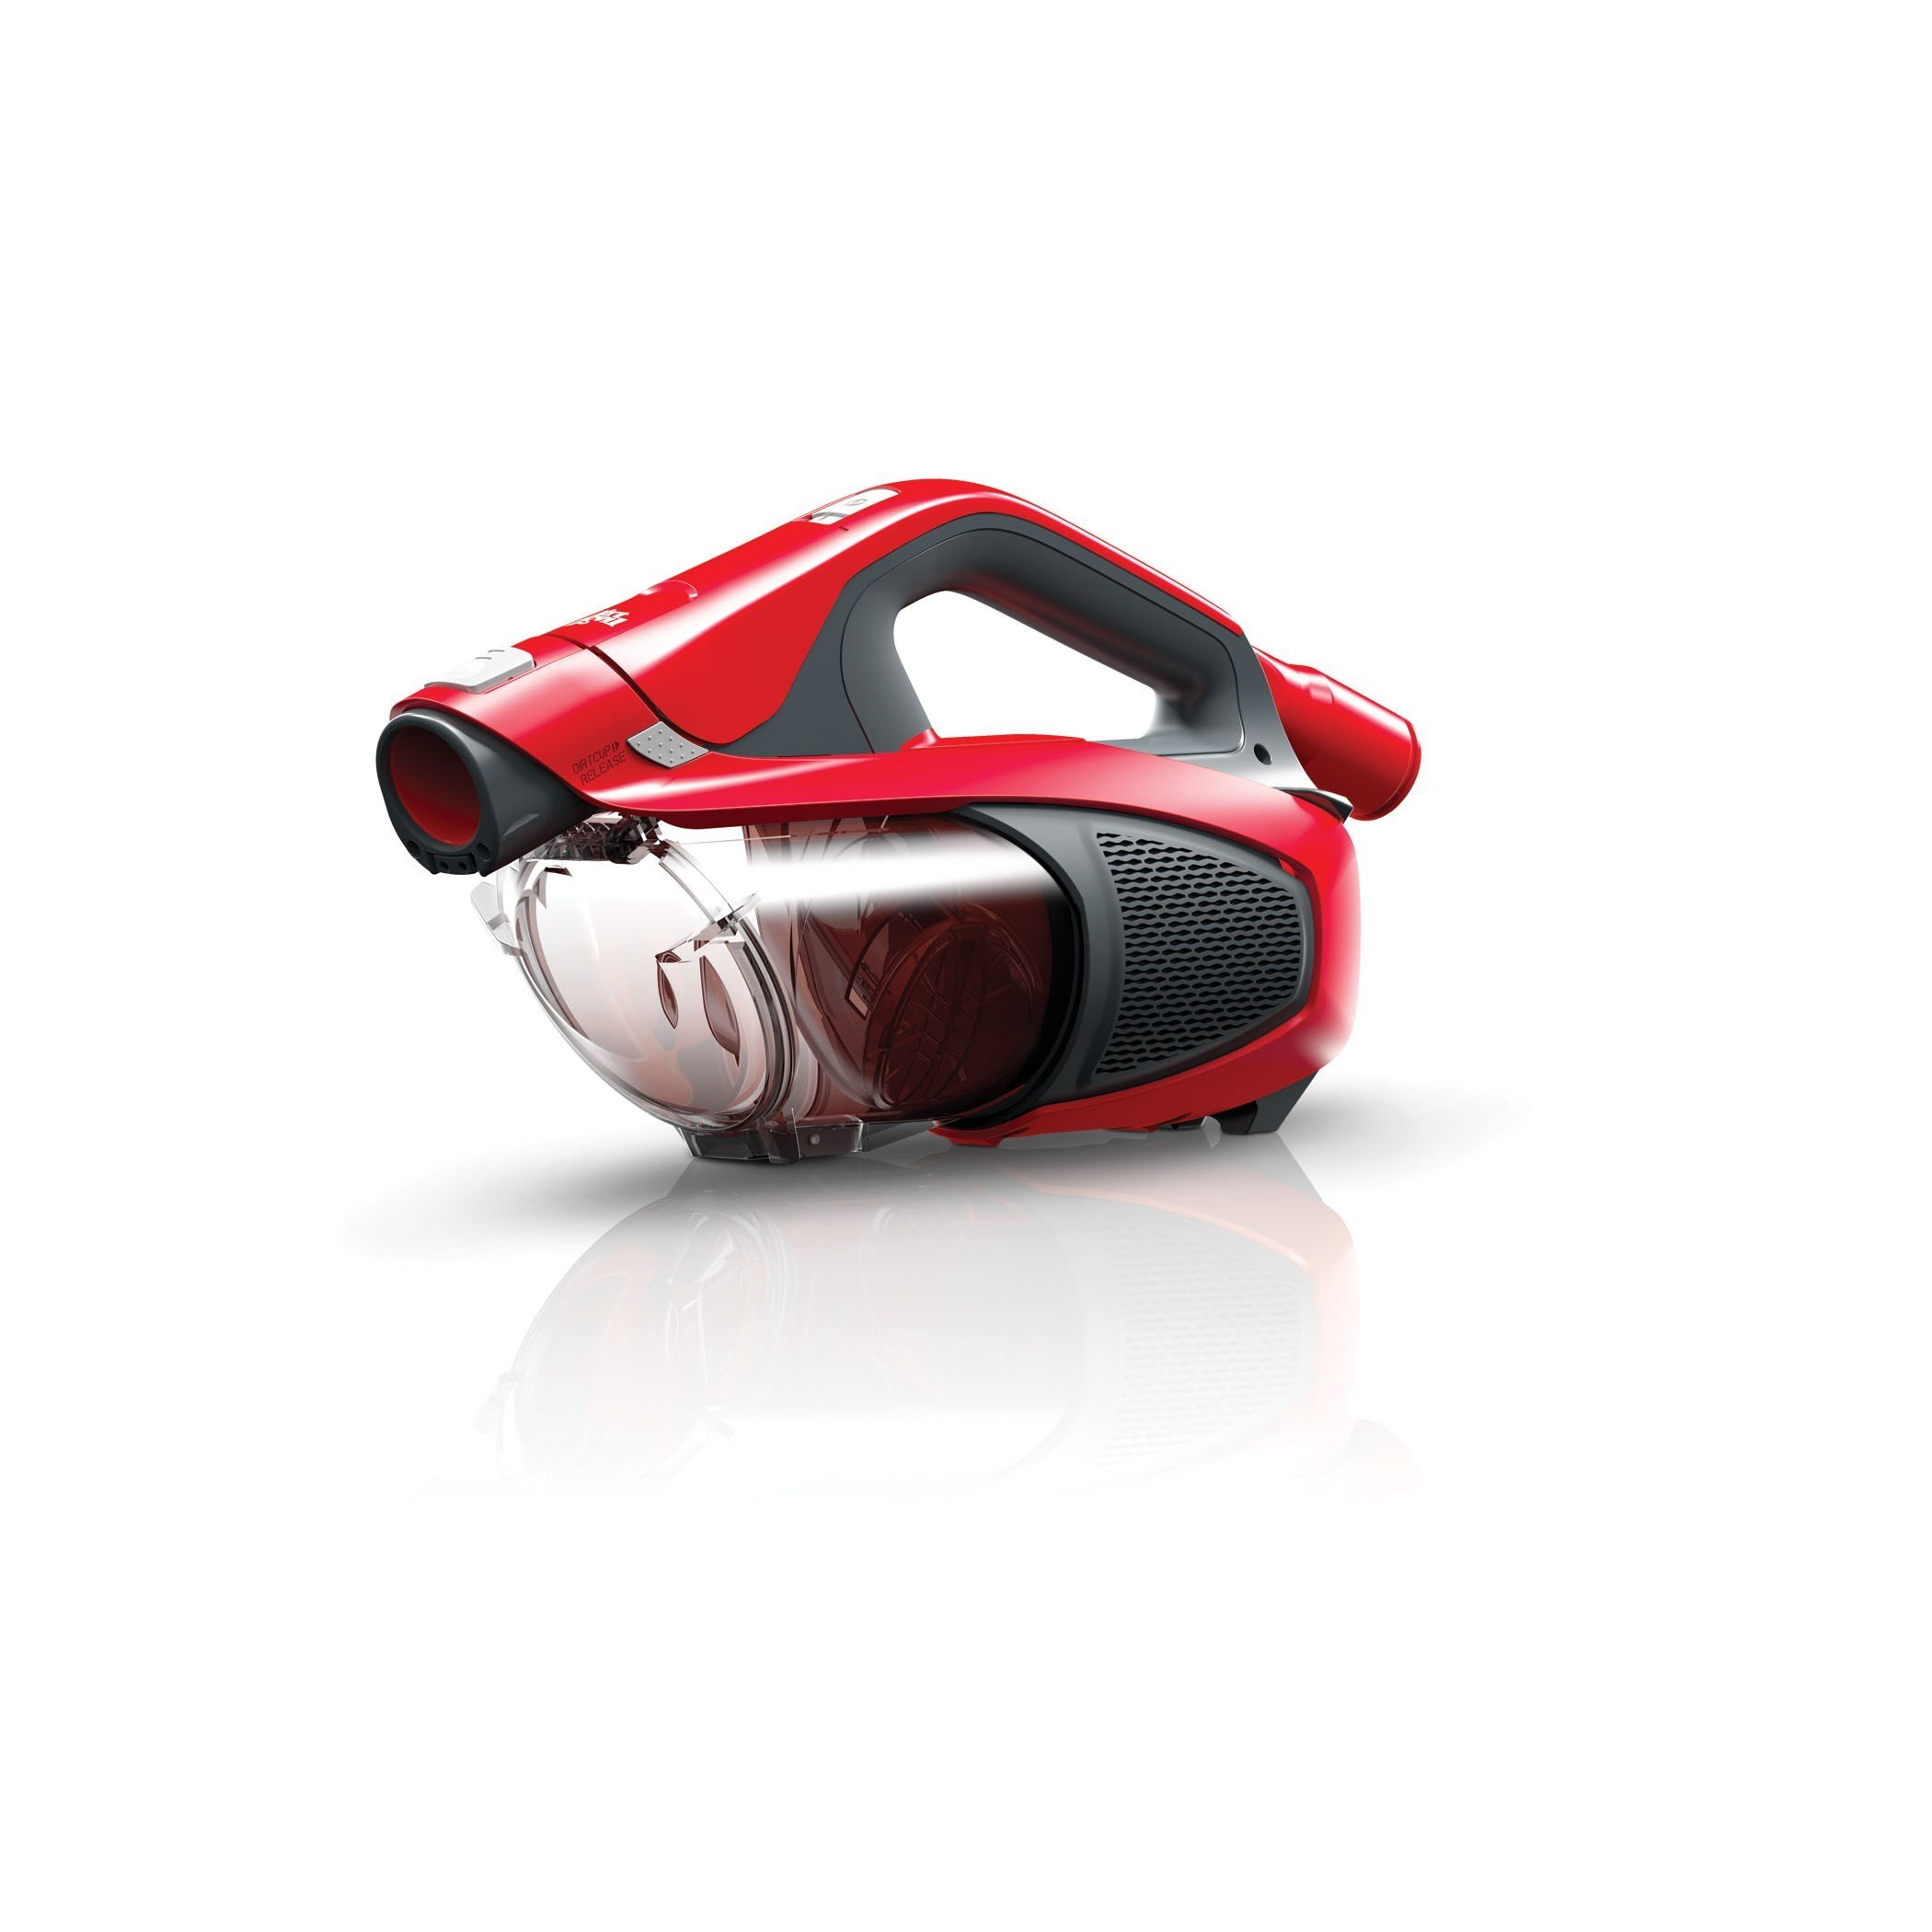 Dirt Devil Vacuum Cleaner 360 Reach Pro Corded Bagless Stick and Handheld Vacuum SD12515B by Dirt Devil (Image #22)